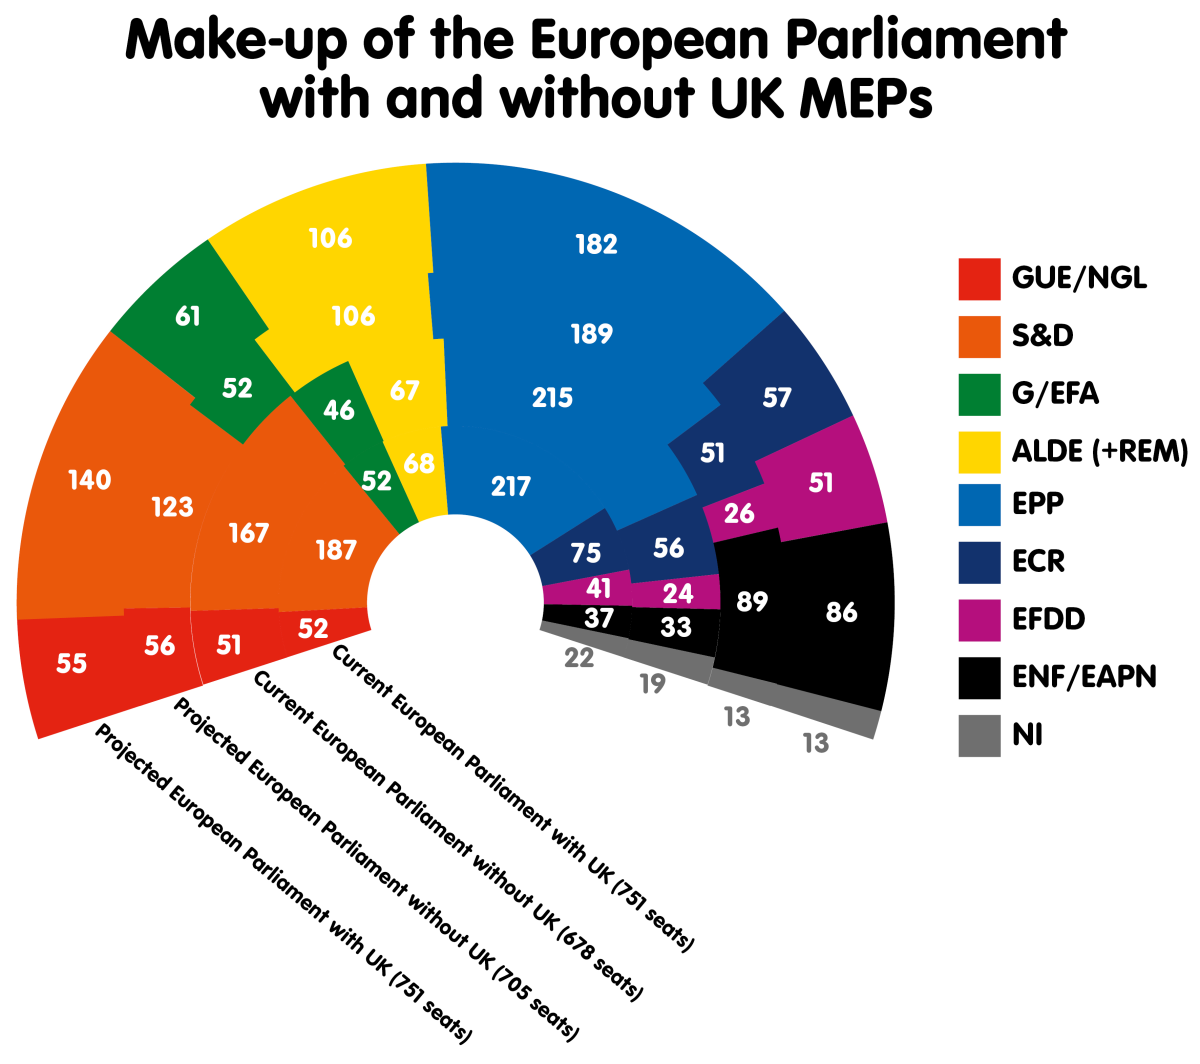 Make-up of the European Parliament with and without UK MEPs